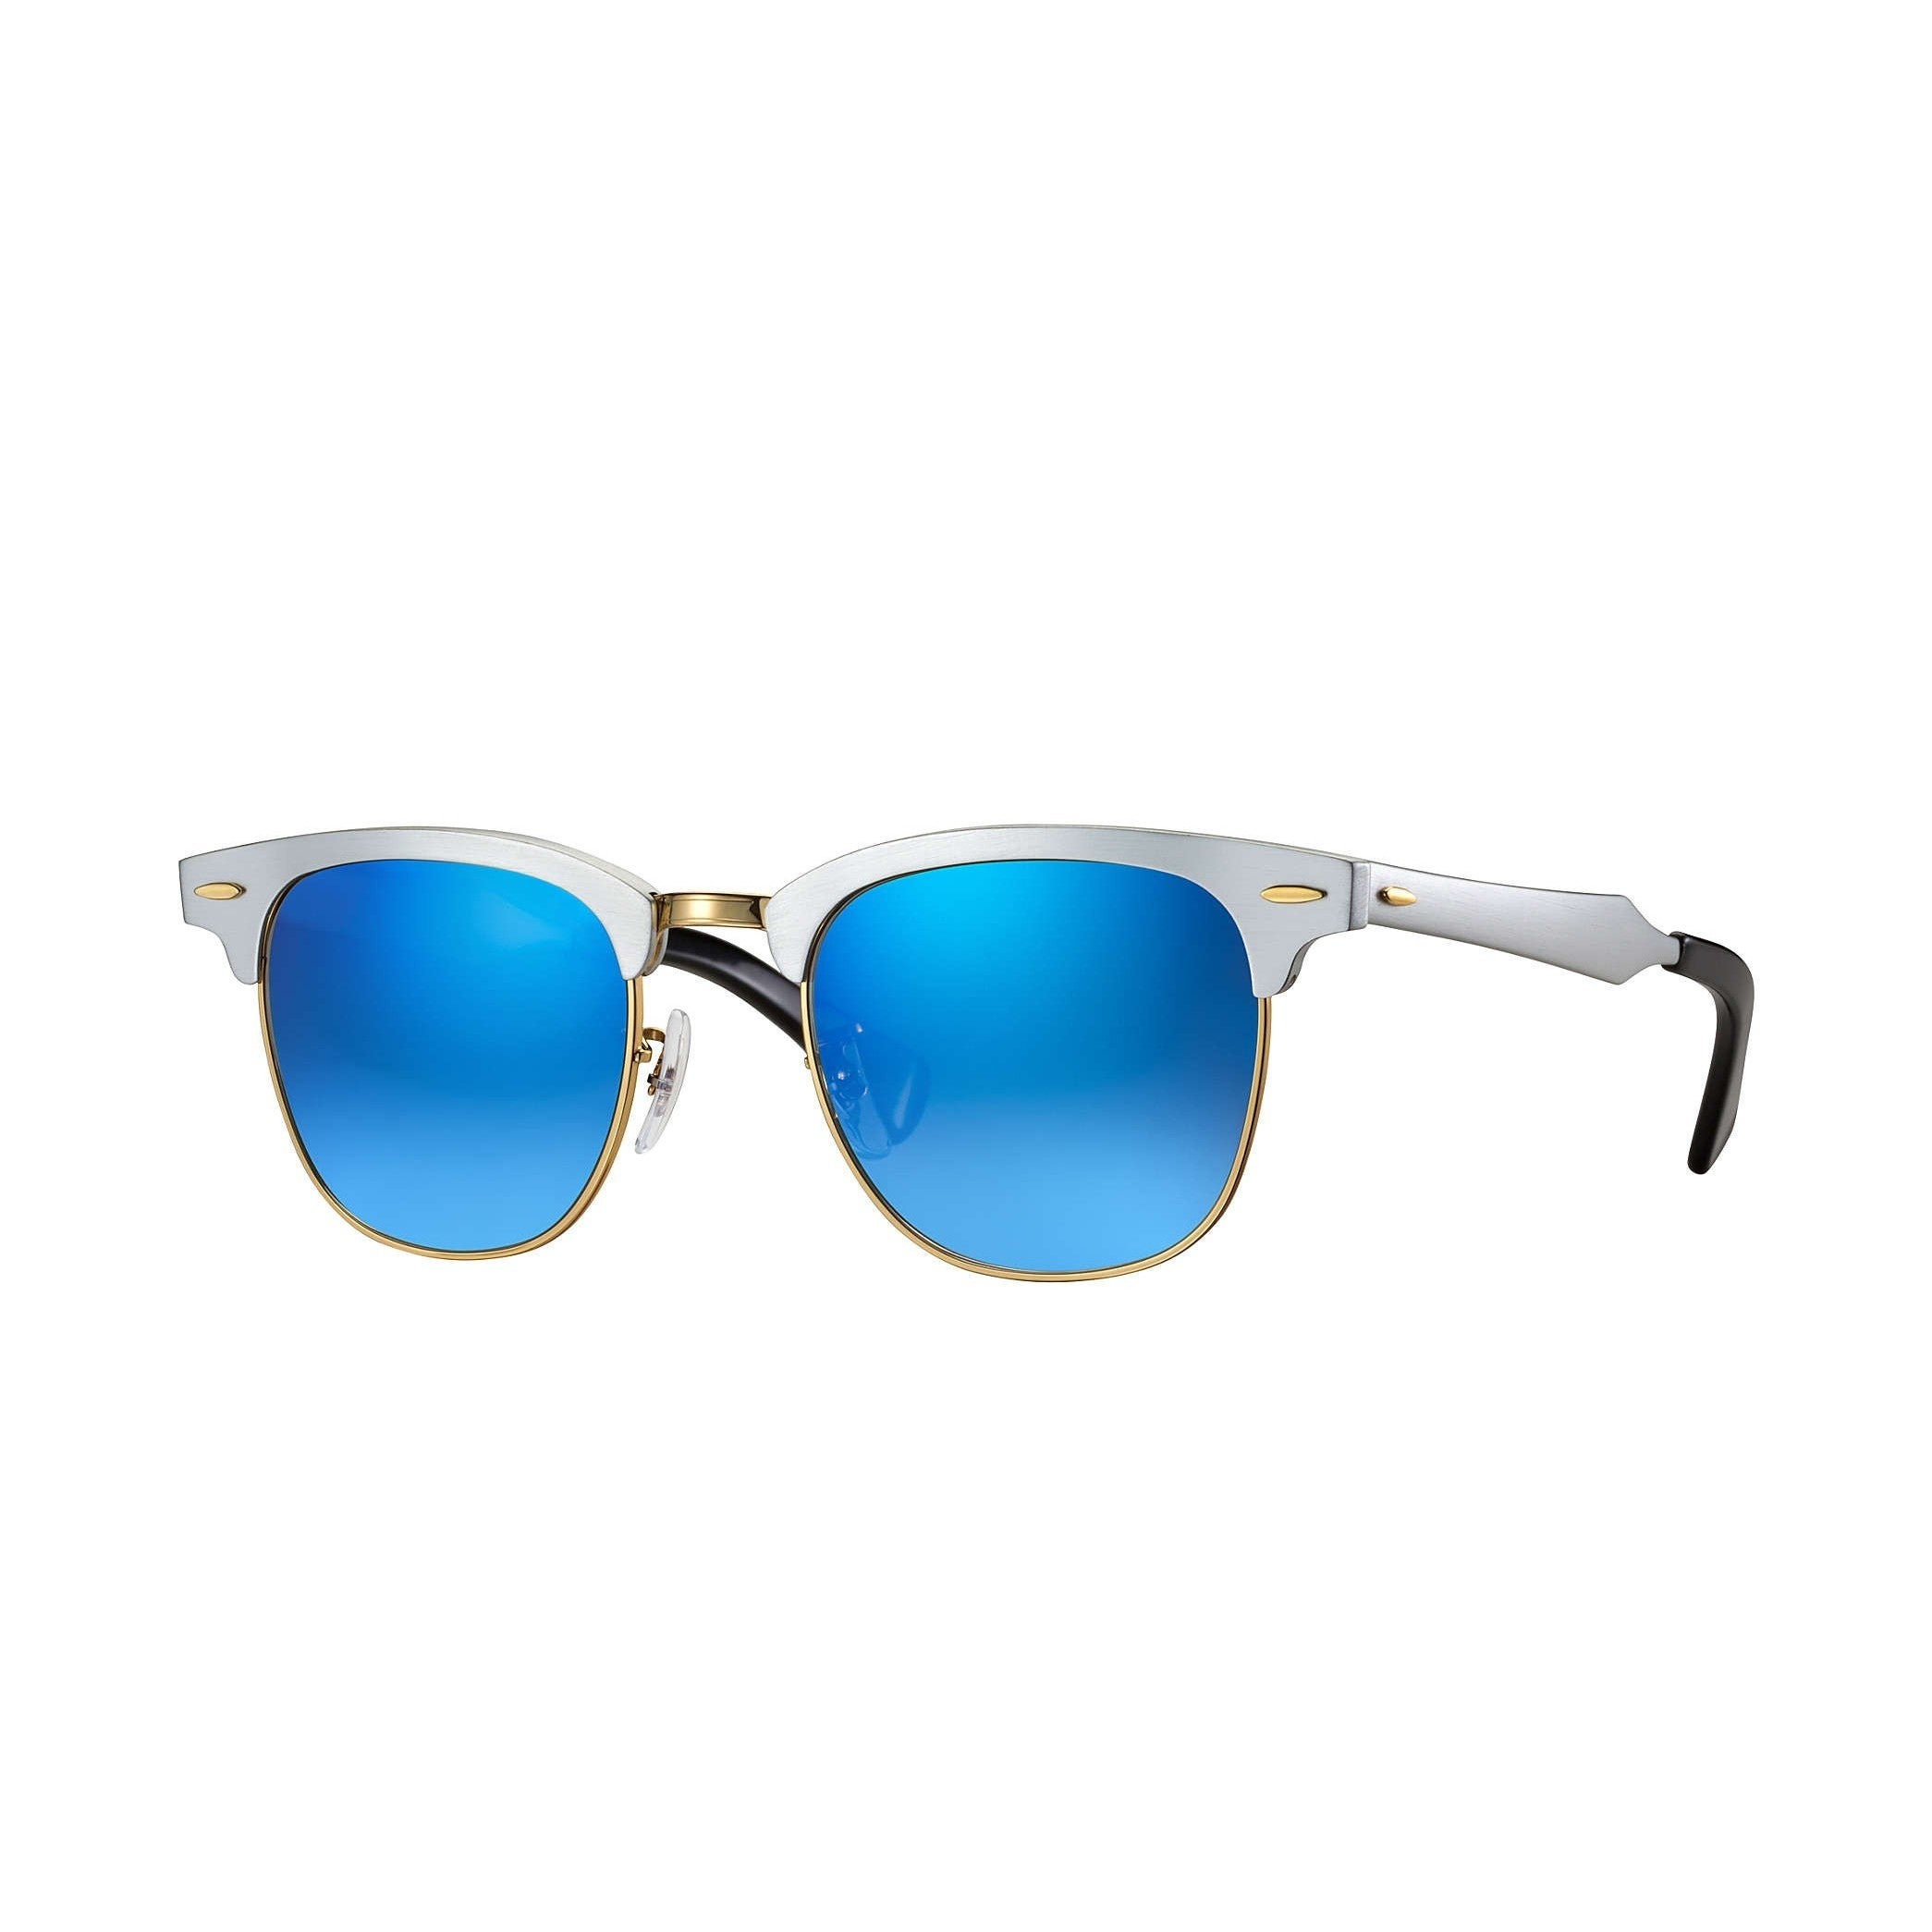 Ray-Ban Unisex RB3507 137 7Q Clubmaster Silver Frame Blue Gradient Flash 51  mm Lens Sunglasses f4c1b4d1c2